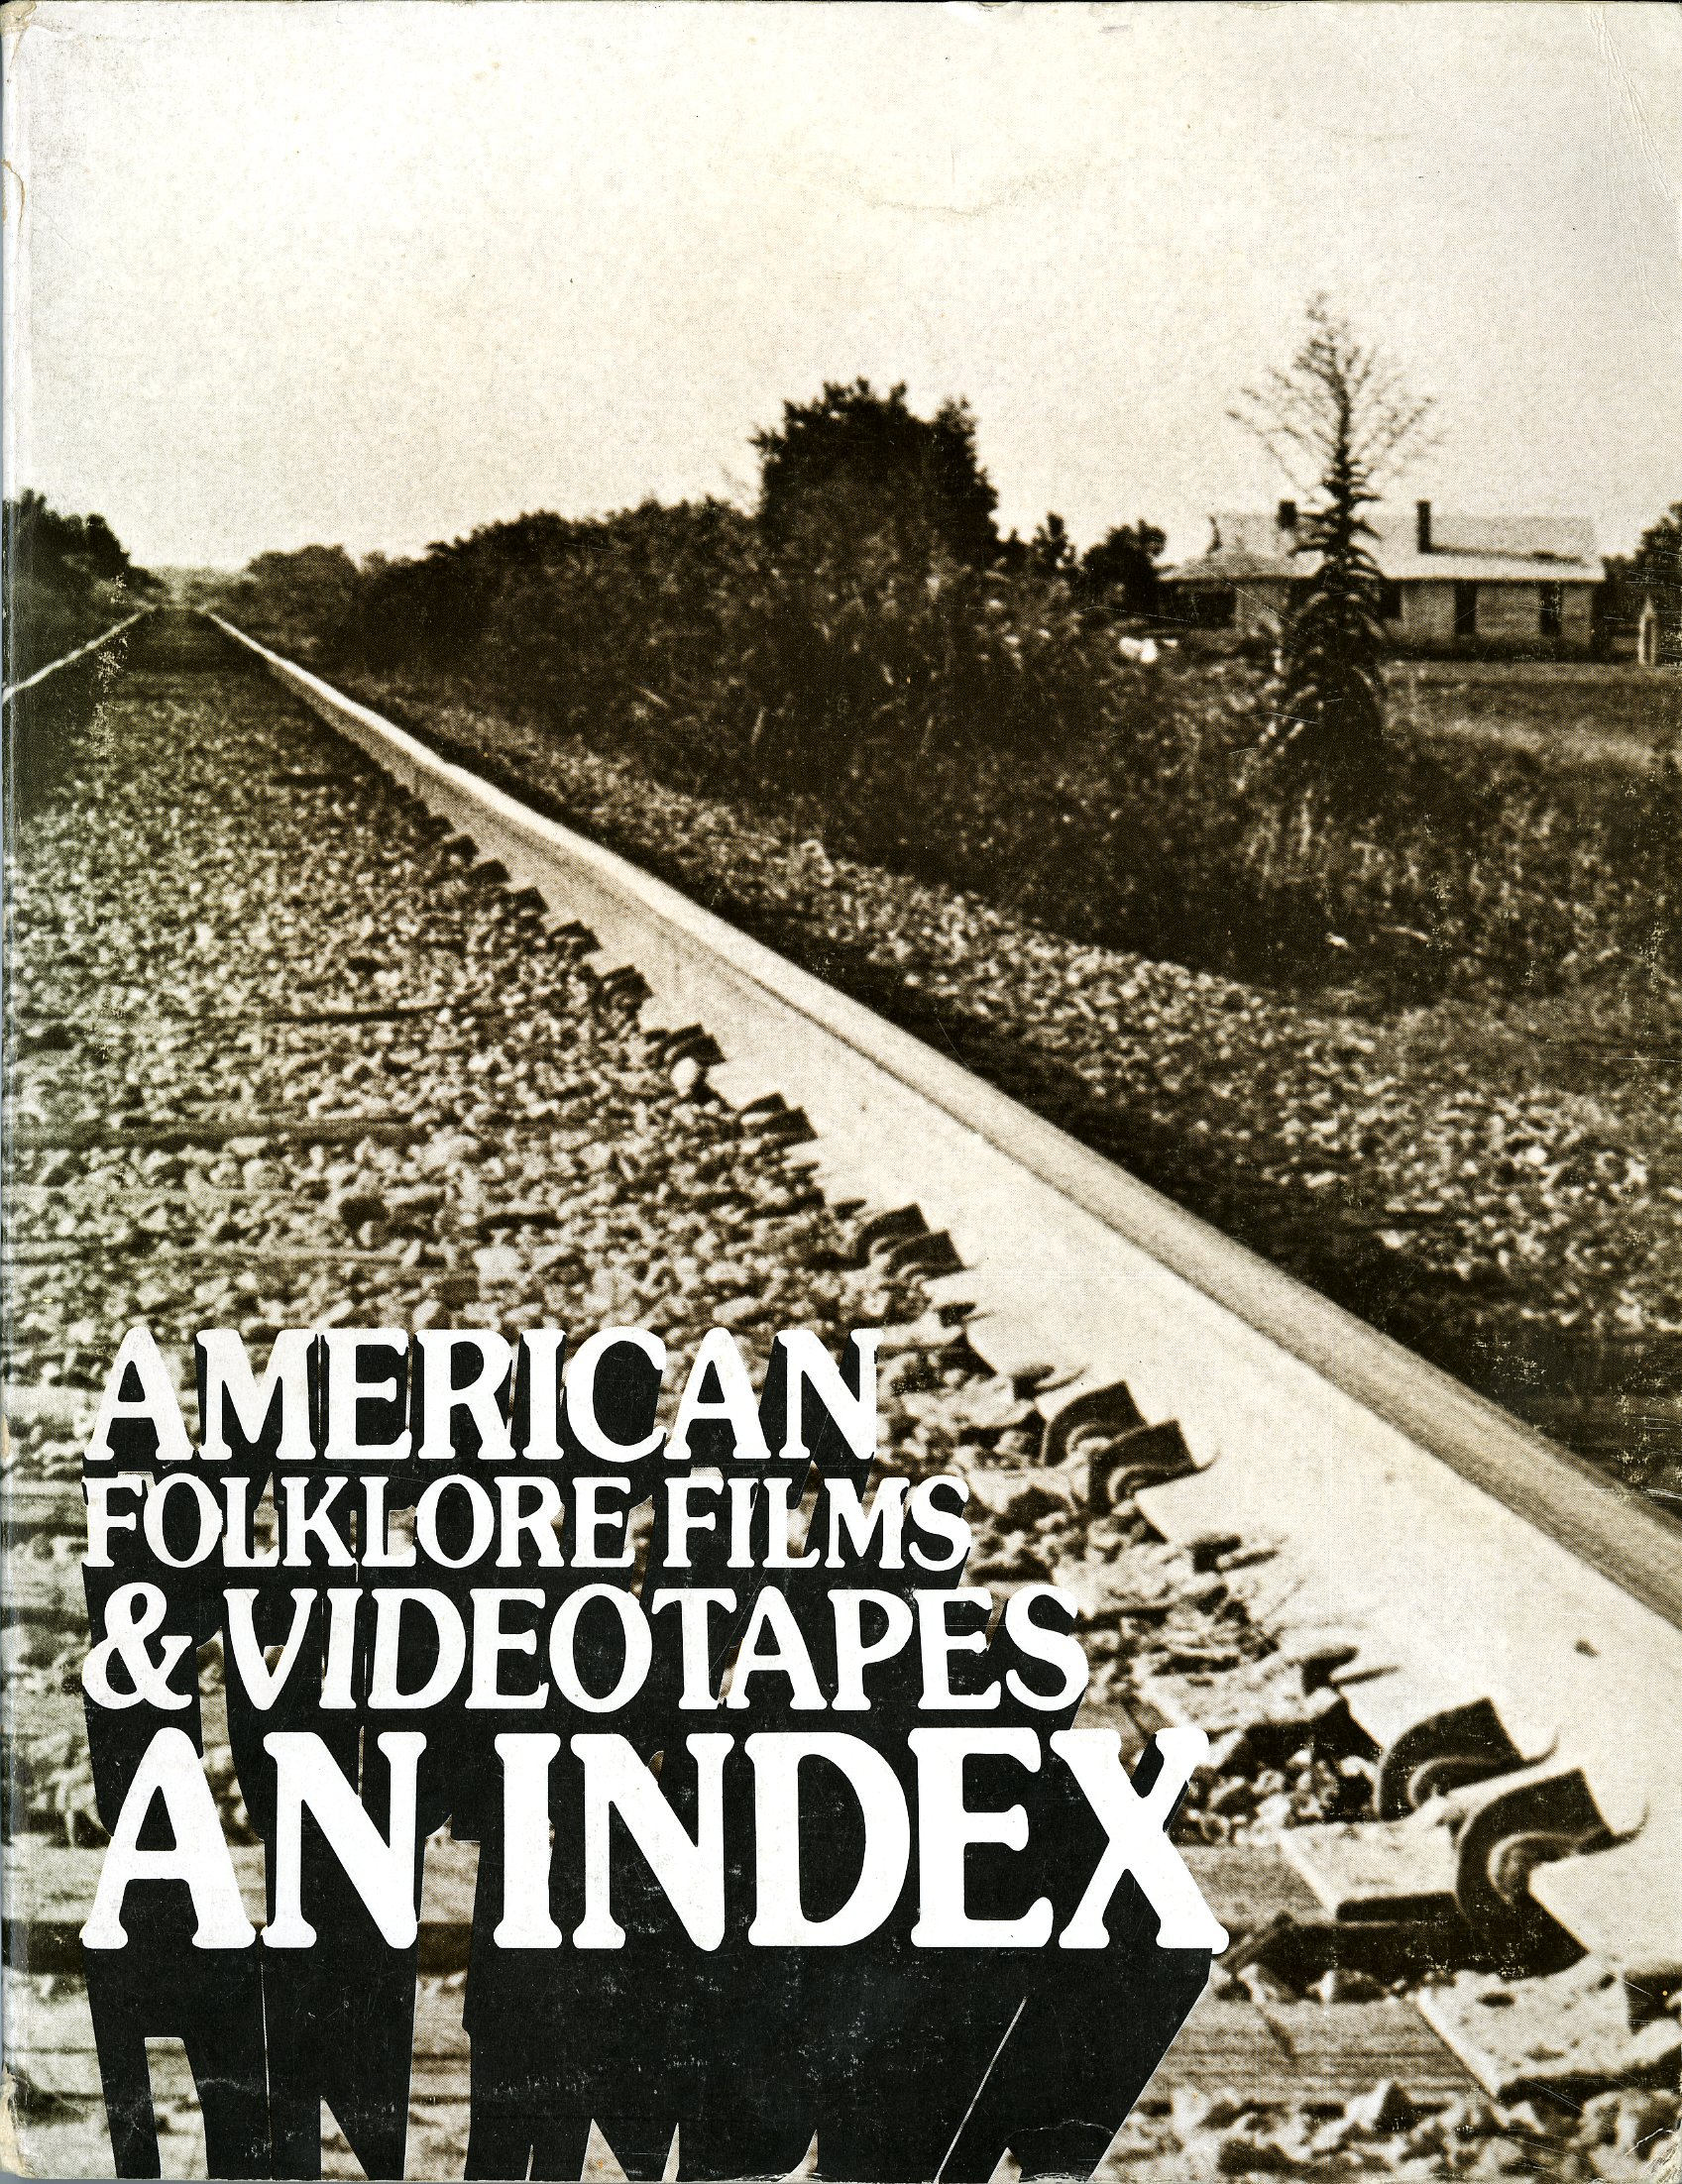 American Folklore Films & Videotapes: An Index. Published by the Center for Southern Folklore, Memphis Tennessee.  SFC Call no. Z5984.U6 A44 1976